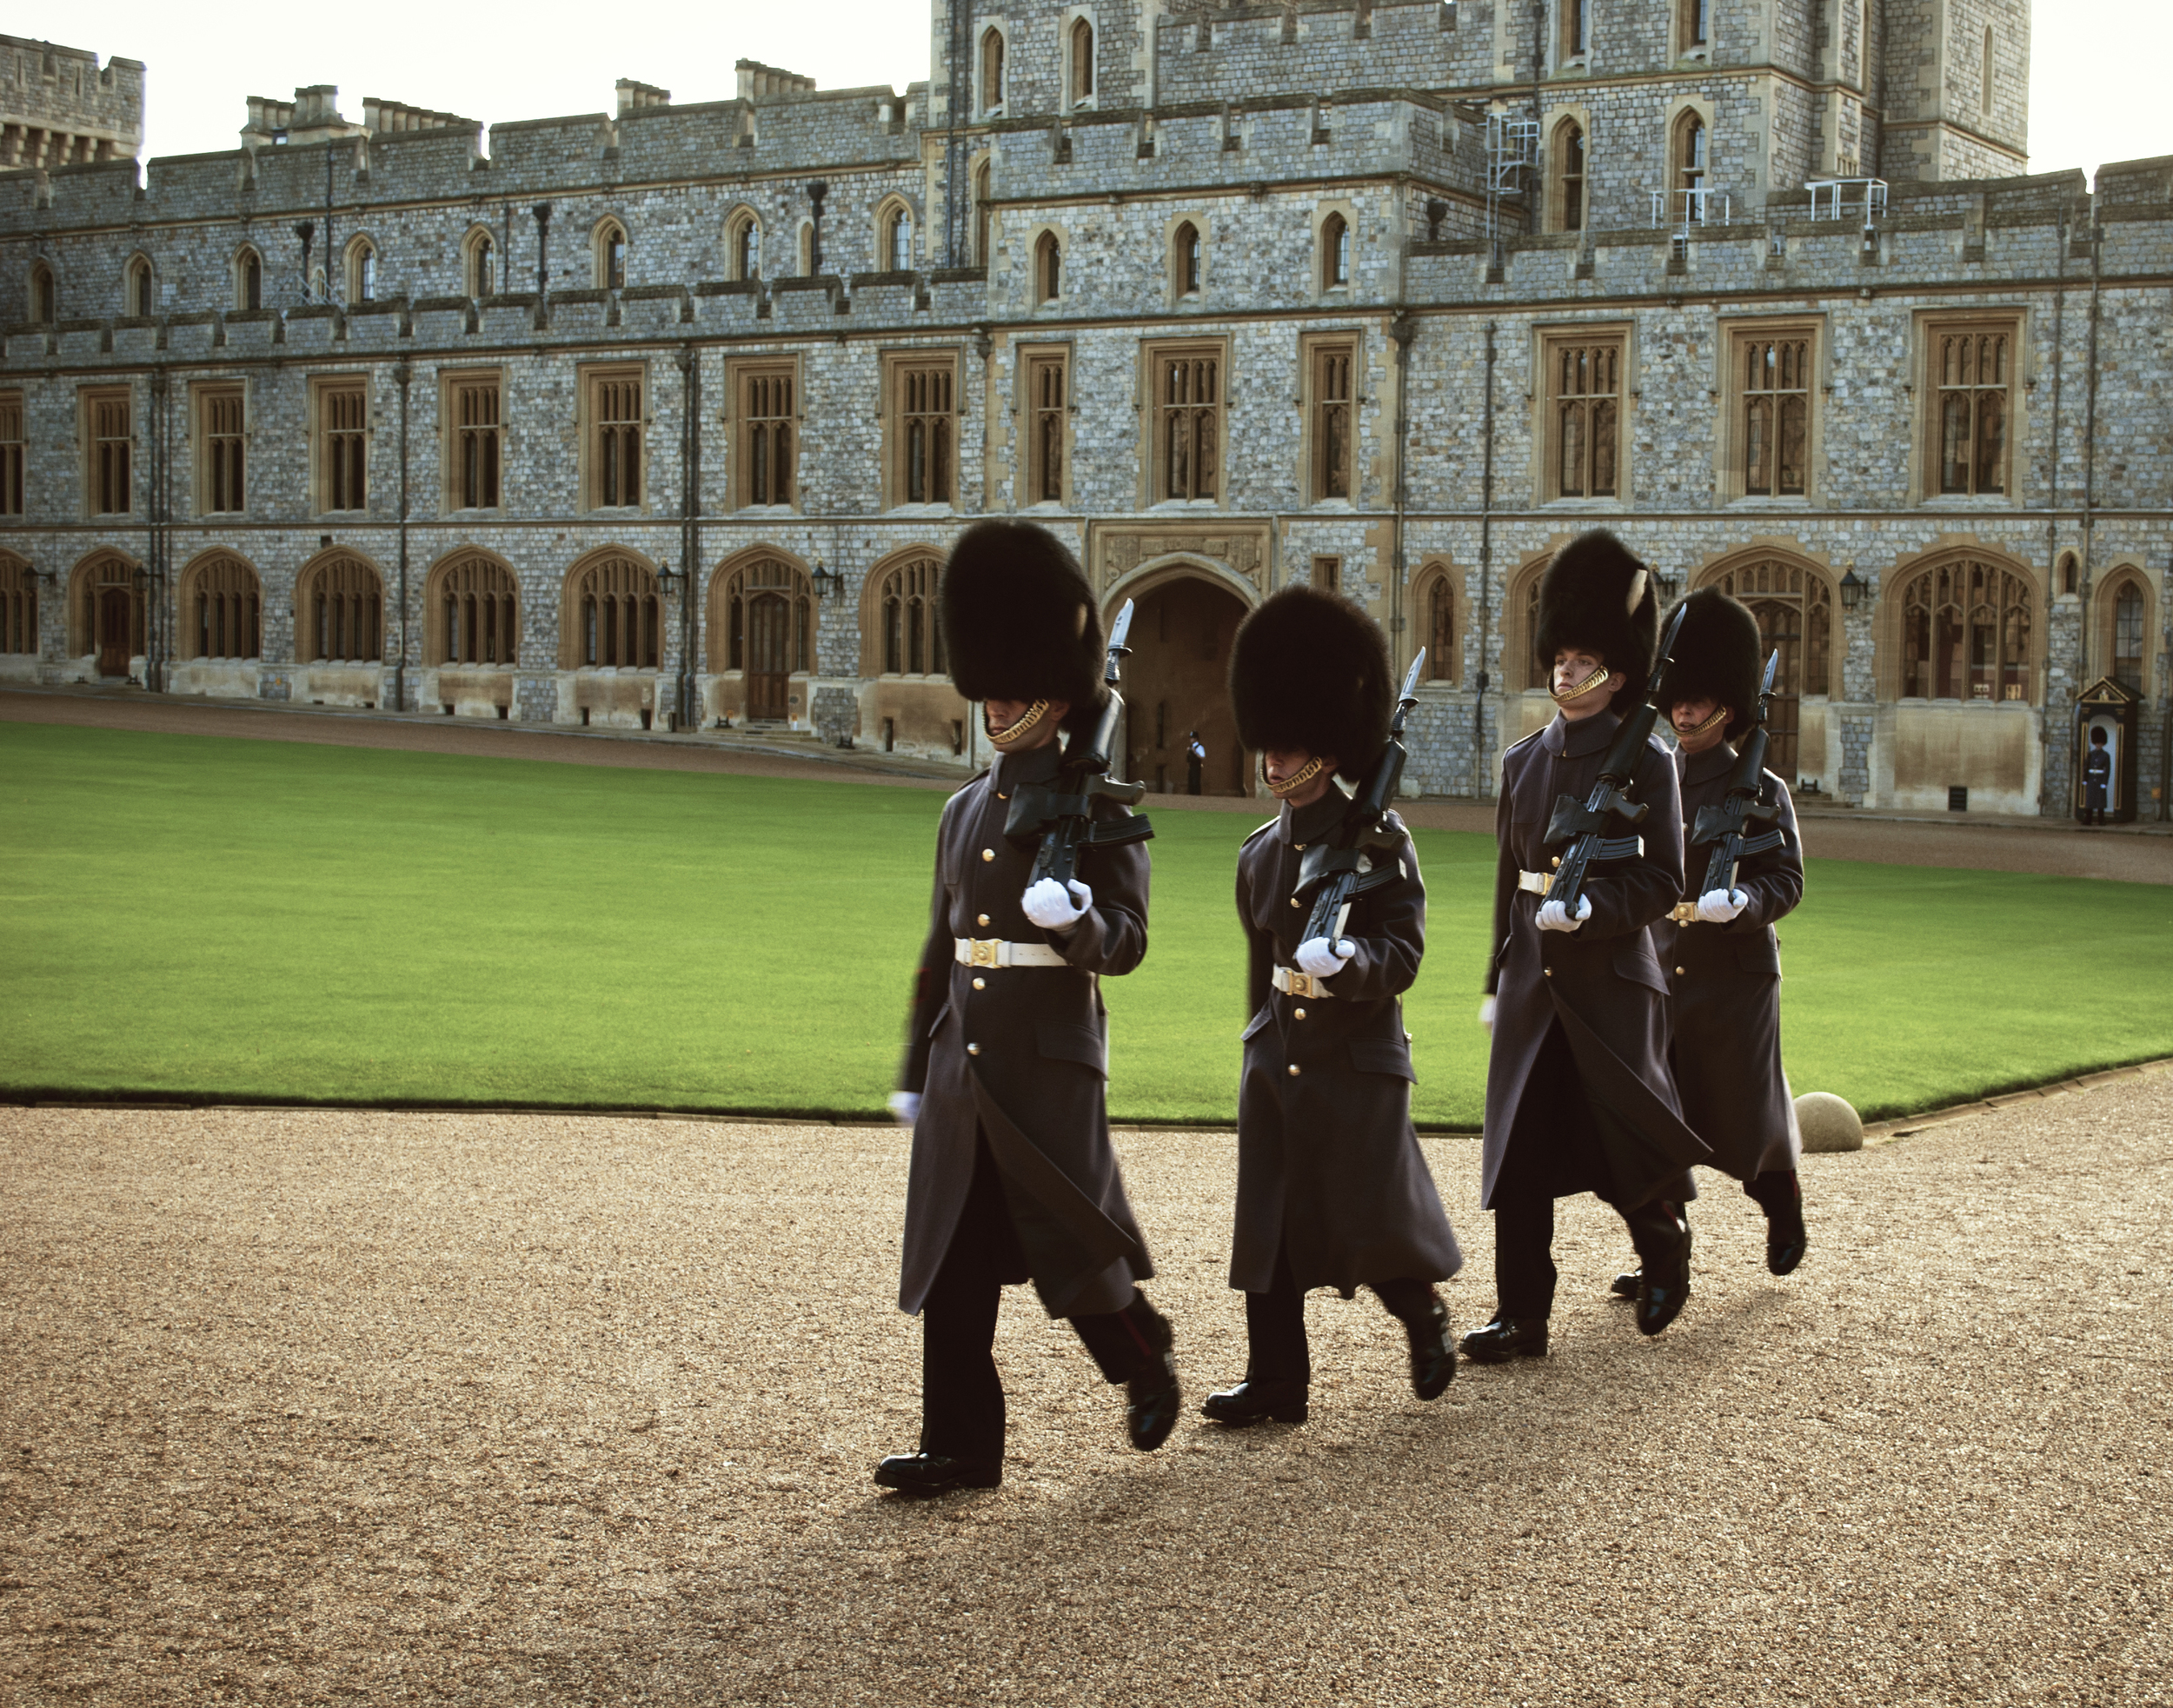 Queen's Guard at Windsor Castle